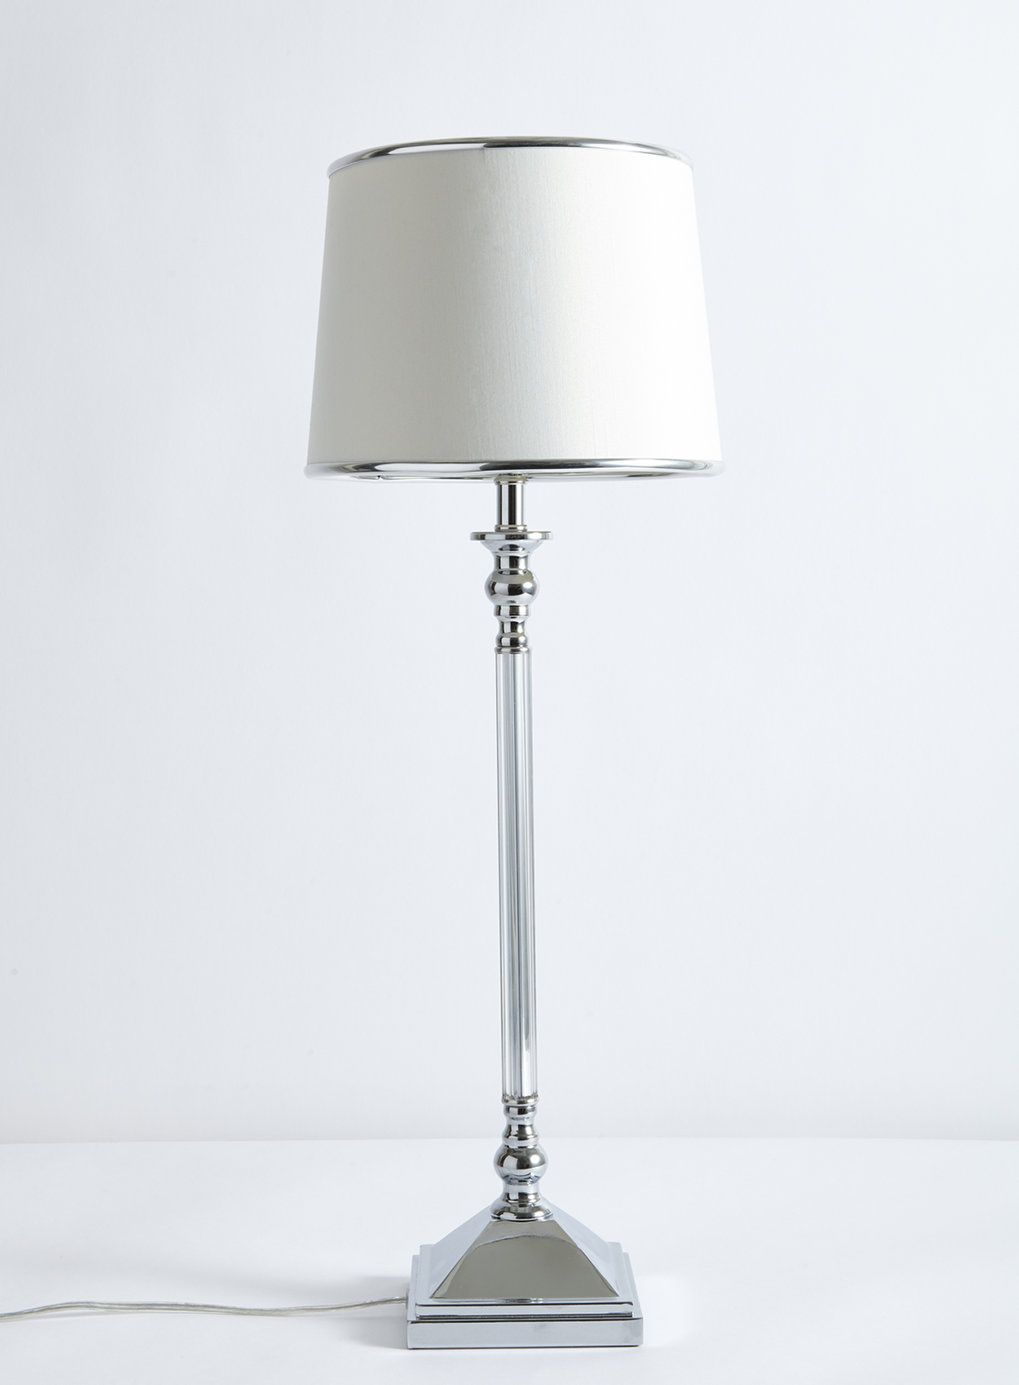 holly willoughby crystal table lamp - bhs | ideas for the house